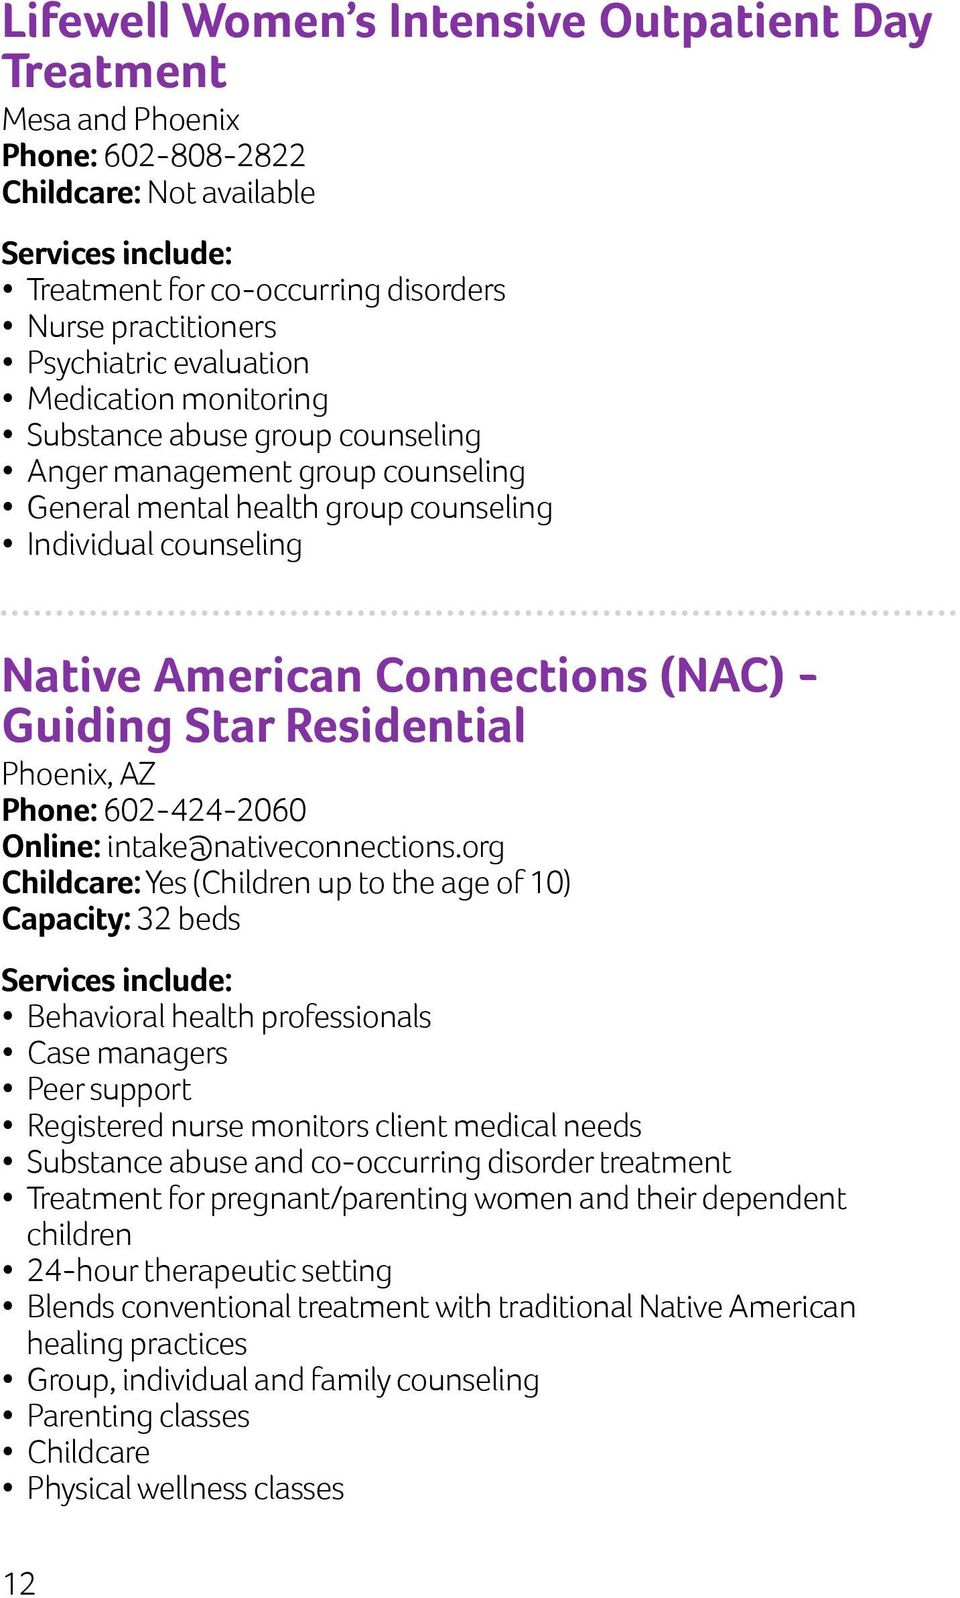 Residential Phoenix, AZ Phone: 602-424-2060 Online: intake@nativeconnections.